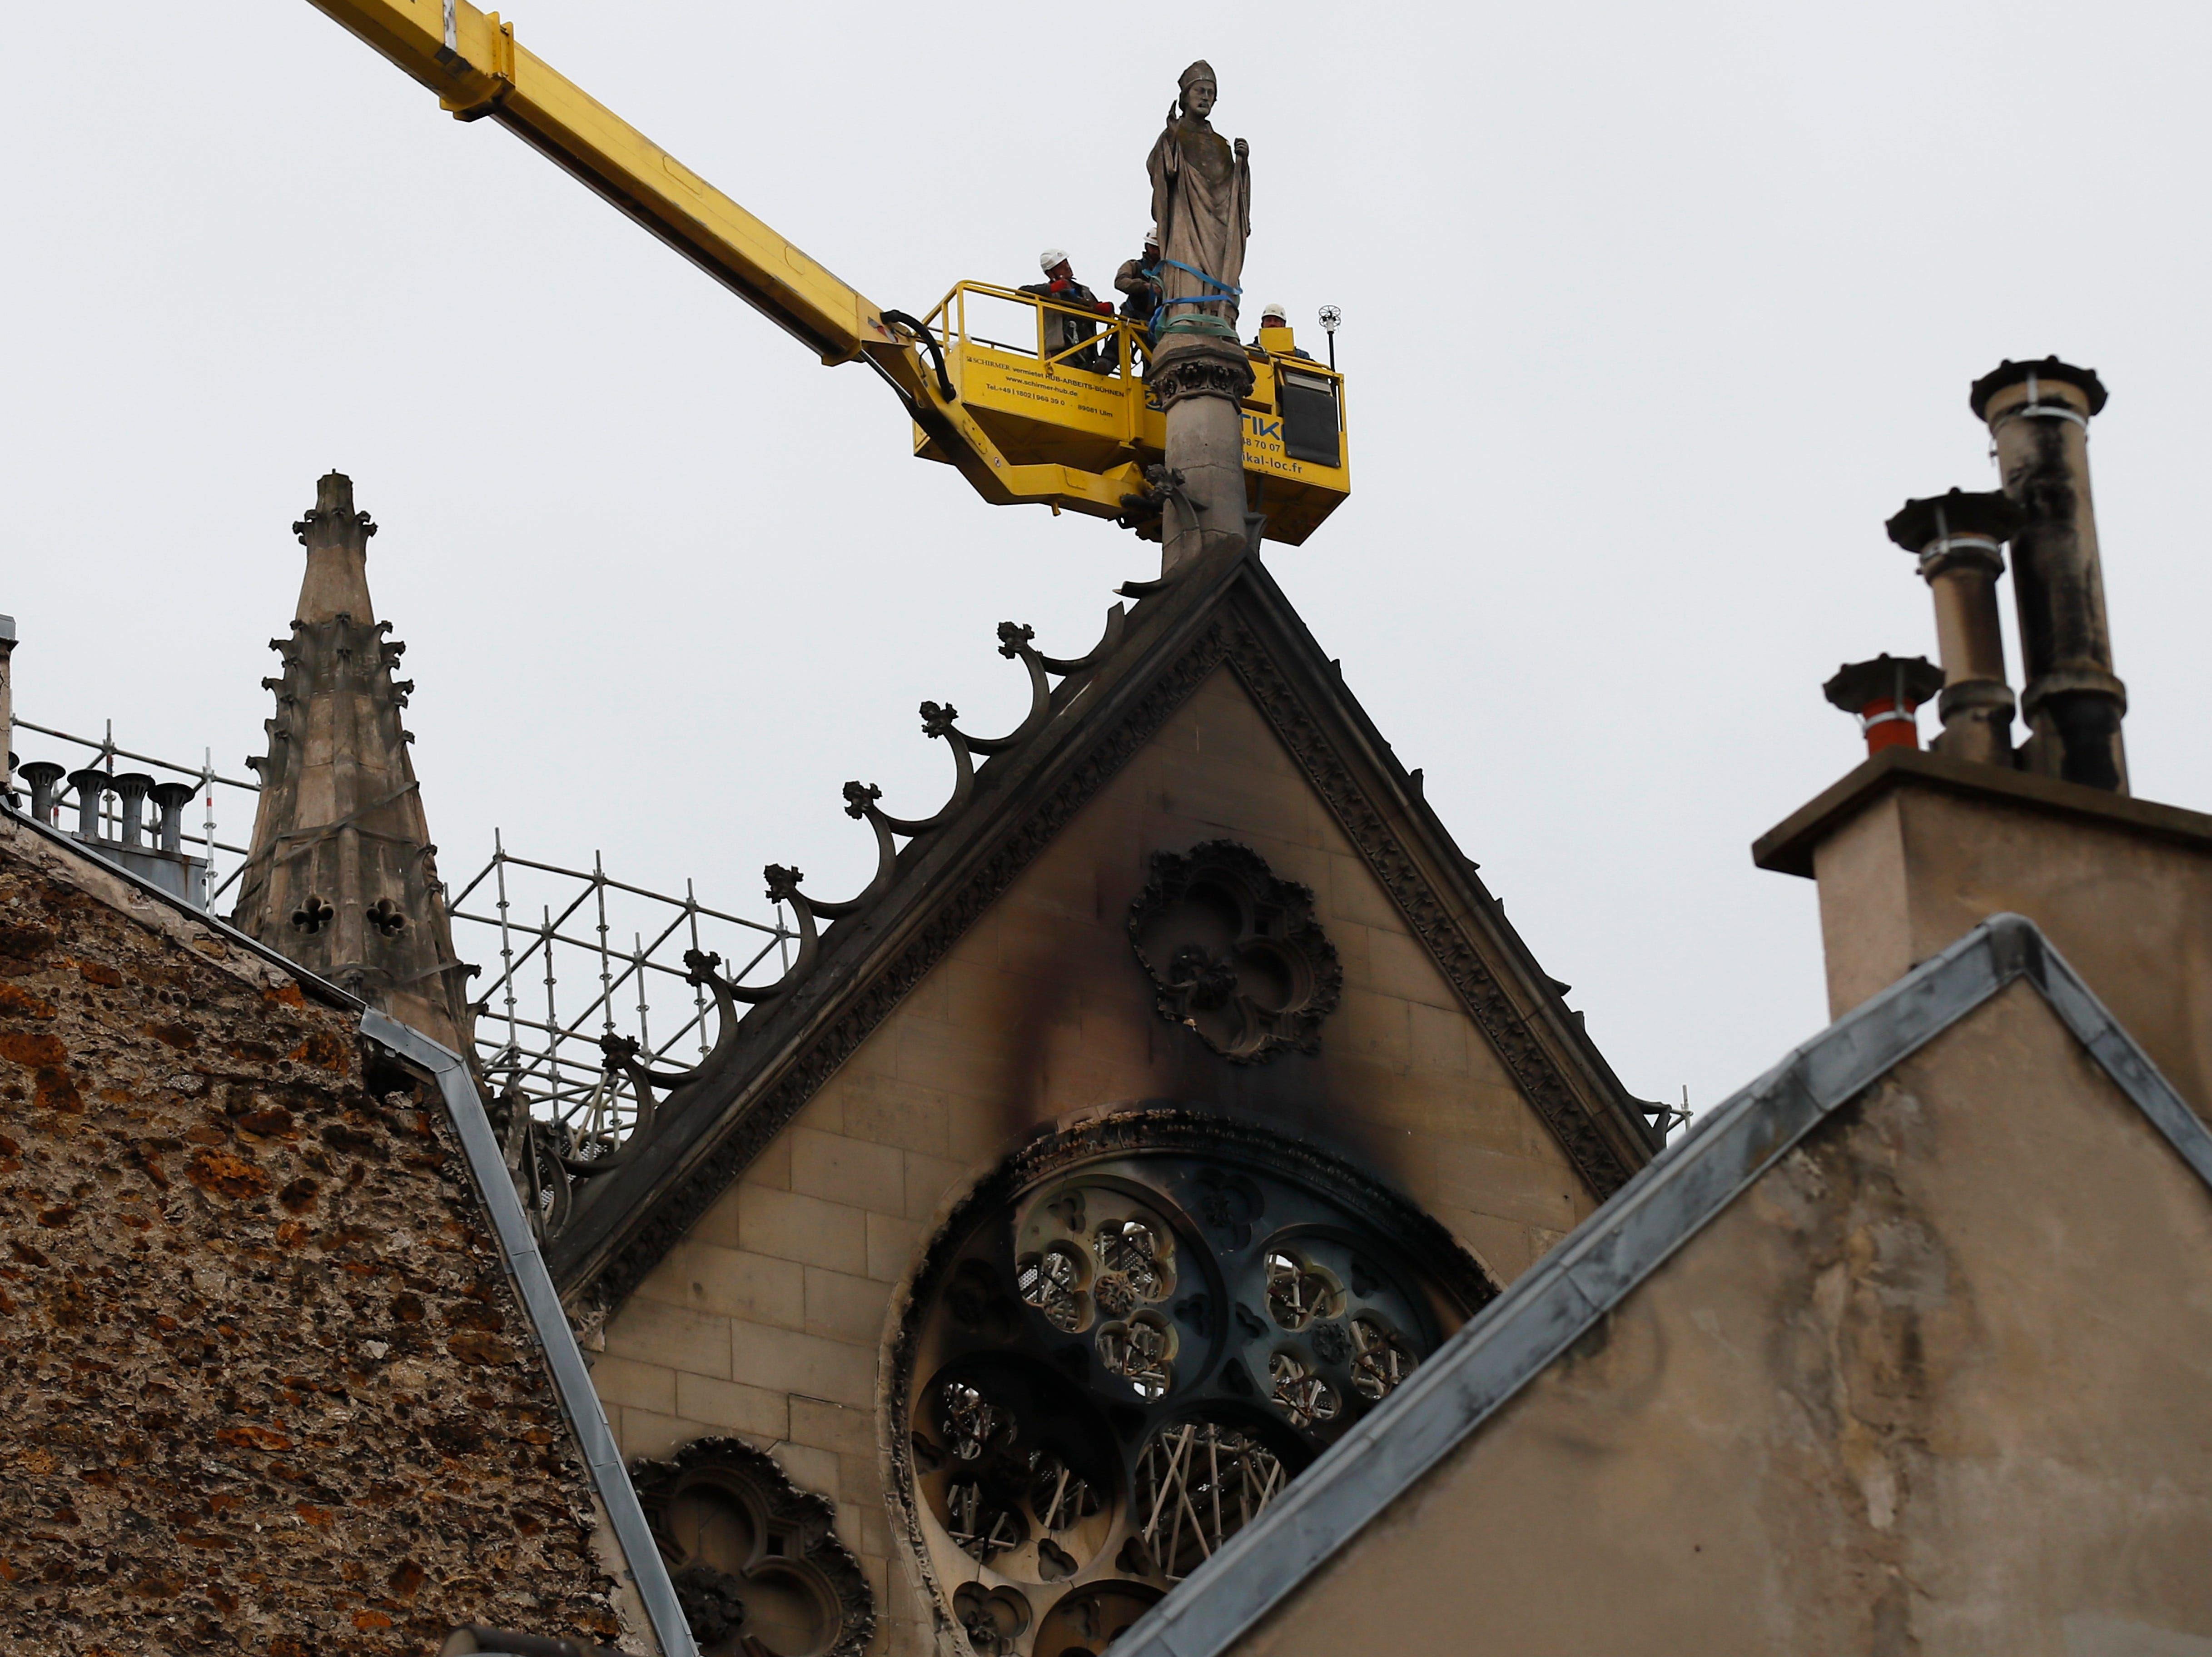 Workers atop a crane fix a statue at Notre Dame cathedral Tuesday April 16, 2019 in Paris. Firefighters declared success Tuesday in a more than 12-hour battle to extinguish an inferno engulfing Paris' iconic Notre Dame cathedral that claimed its spire and roof, but spared its bell towers. (AP Photo/Francois Mori)